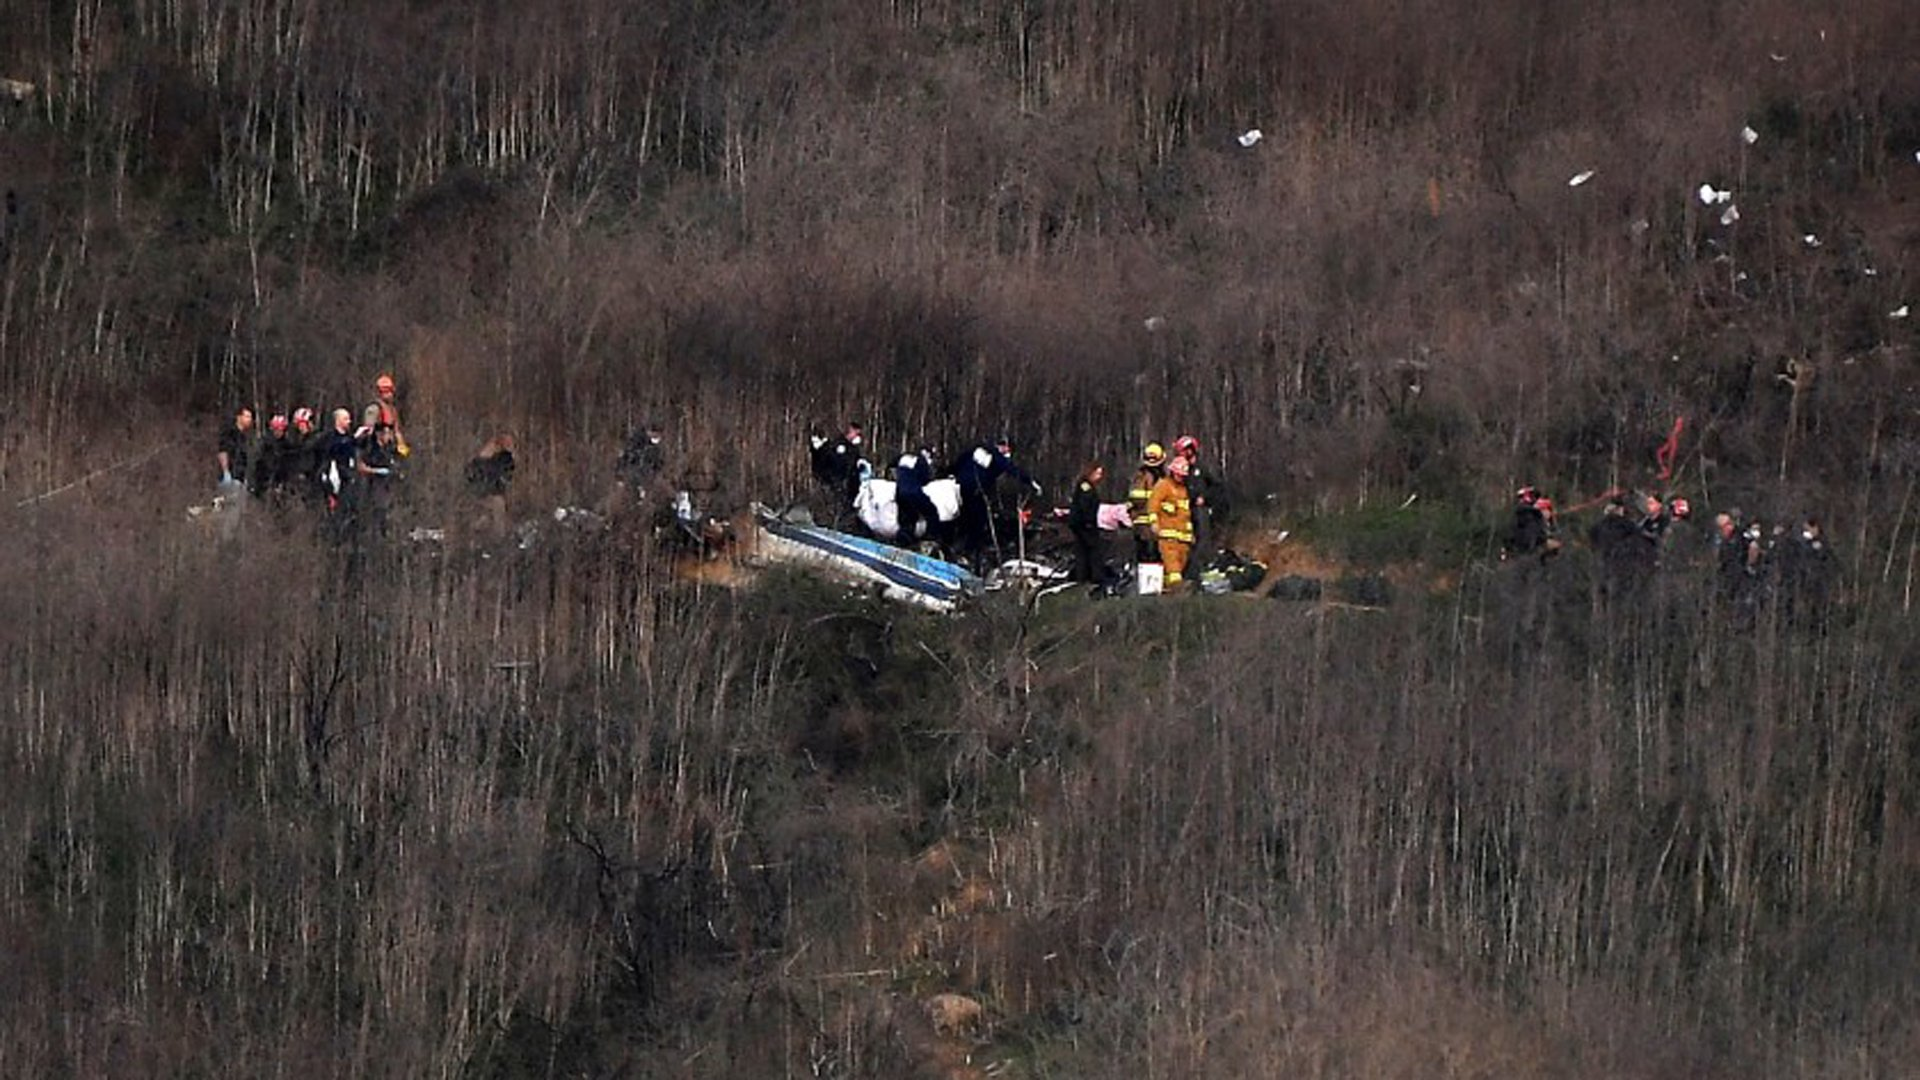 Officials remove a body from the wreckage in Calabasas where Kobe Bryant and his daughter Gianna were among nine dead in a helicopter crash. (Christina House / Los Angeles Times)